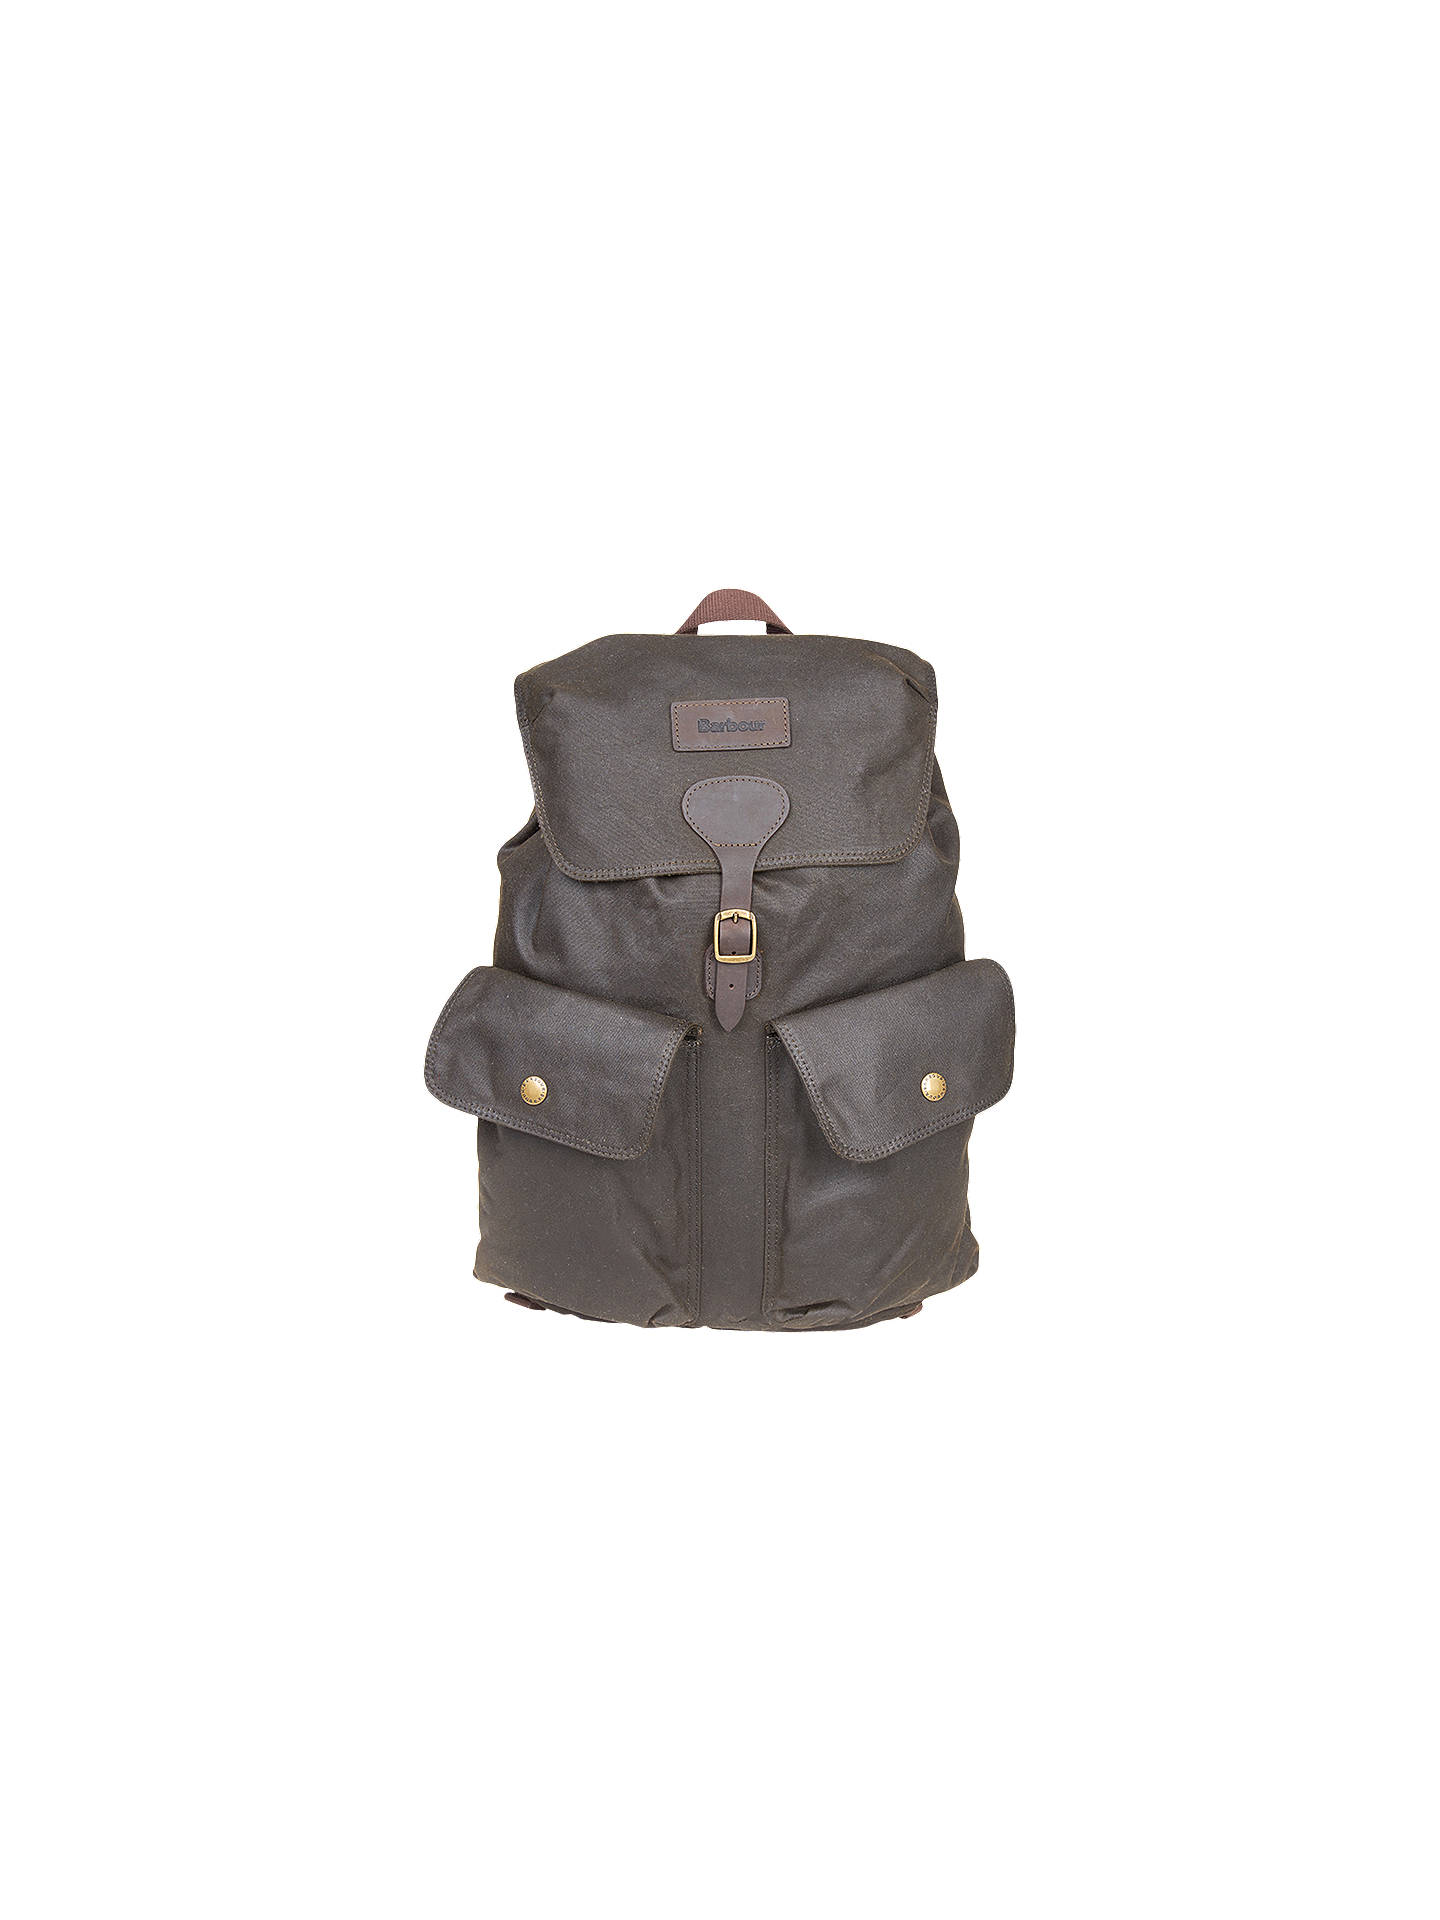 BuyBarbour Wax Cotton Beaufort Backpack, Olive Online at johnlewis.com